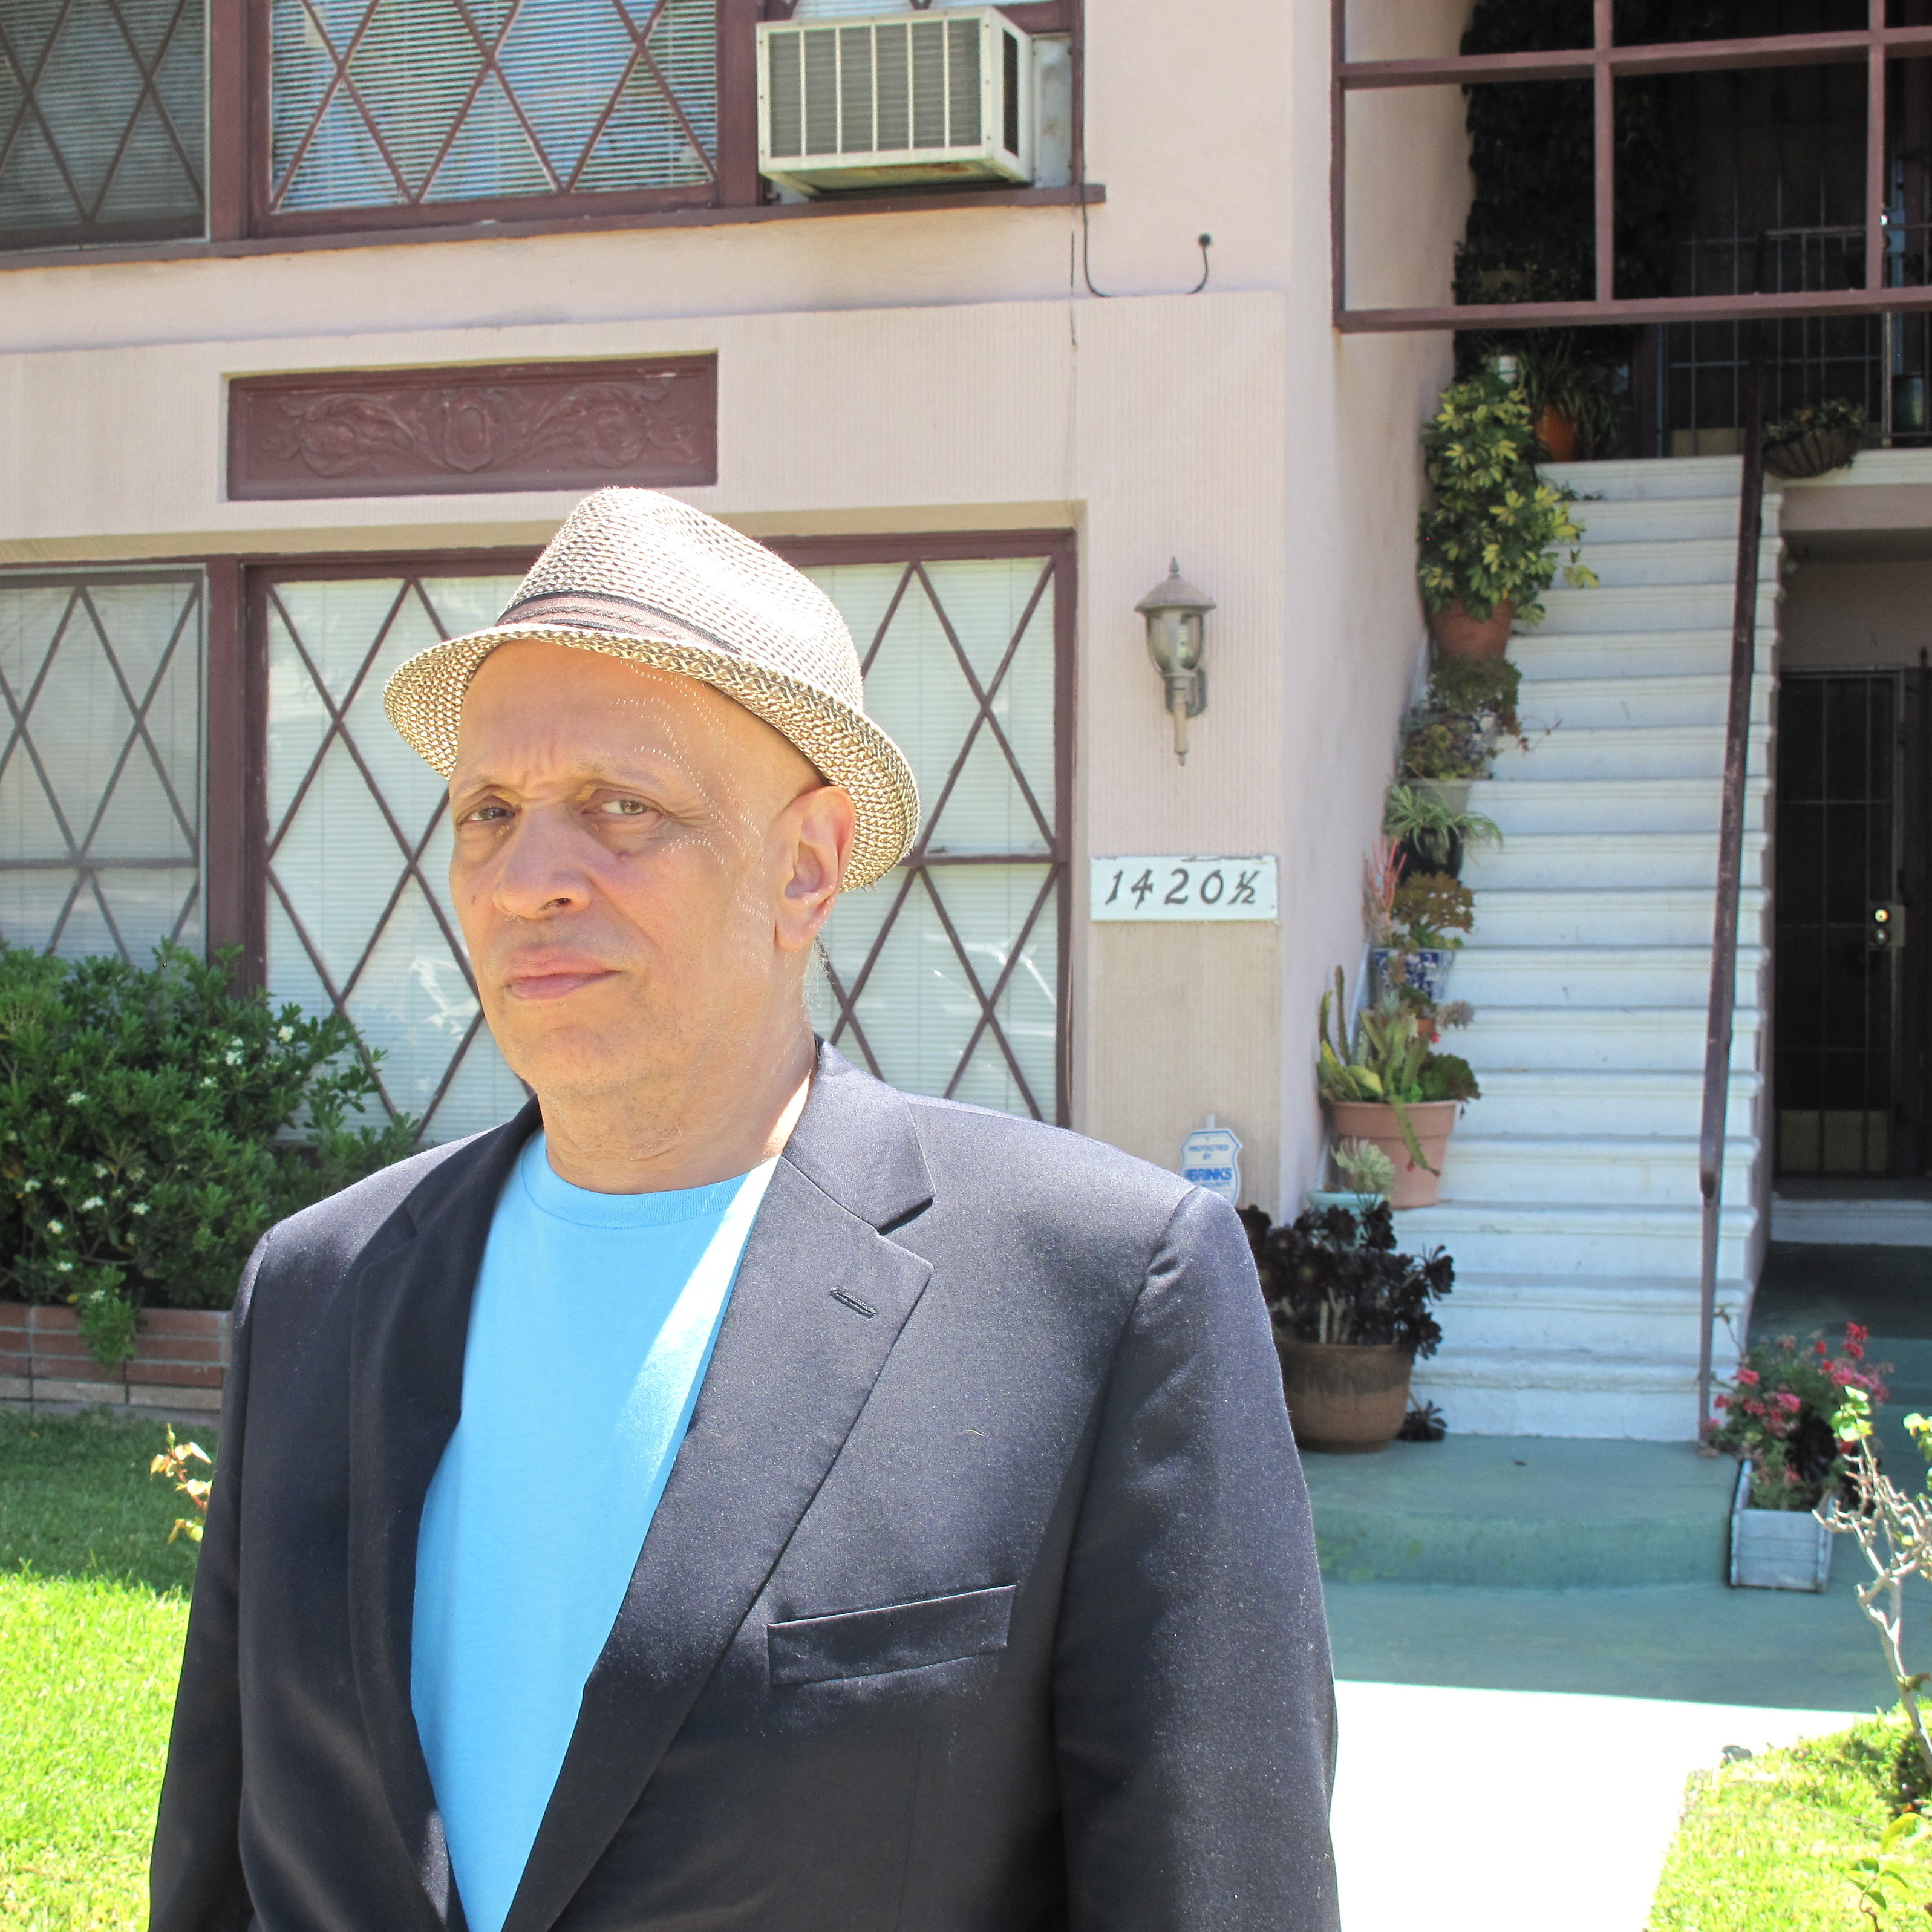 Walter Mosley stands in front of the house his parents owned, near the Pico-Fairfax neighborhood in Los Angeles. Many of the landmarks he knew as a child find their way into his books.